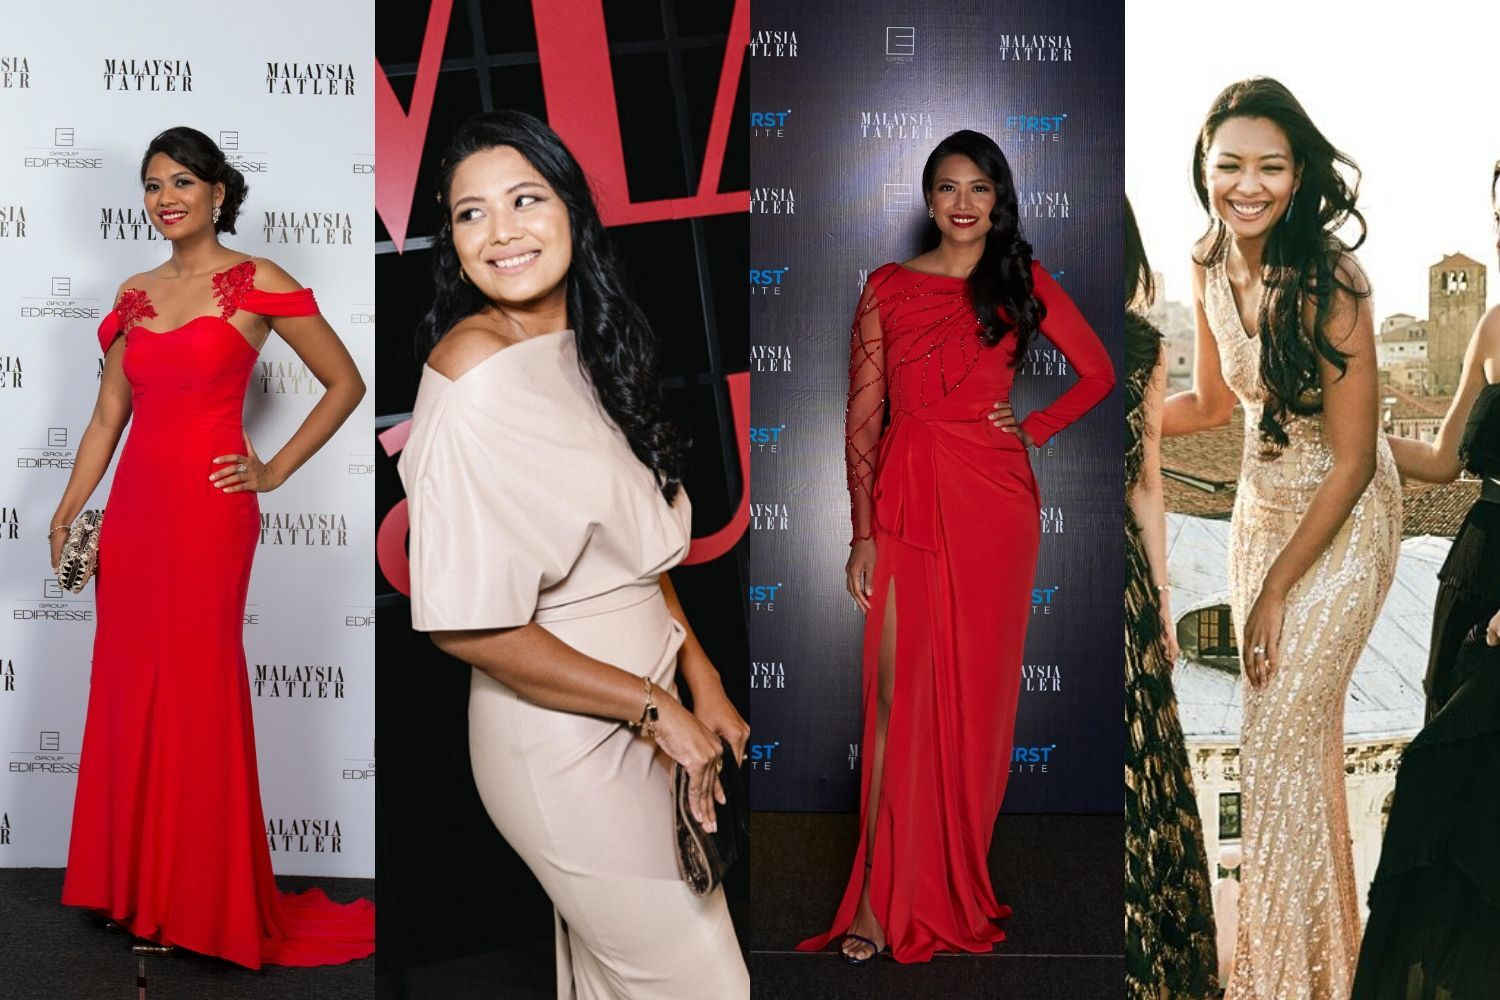 Then & Now: The Style Evolution Of Zaida Ibrahim From 2012-2020